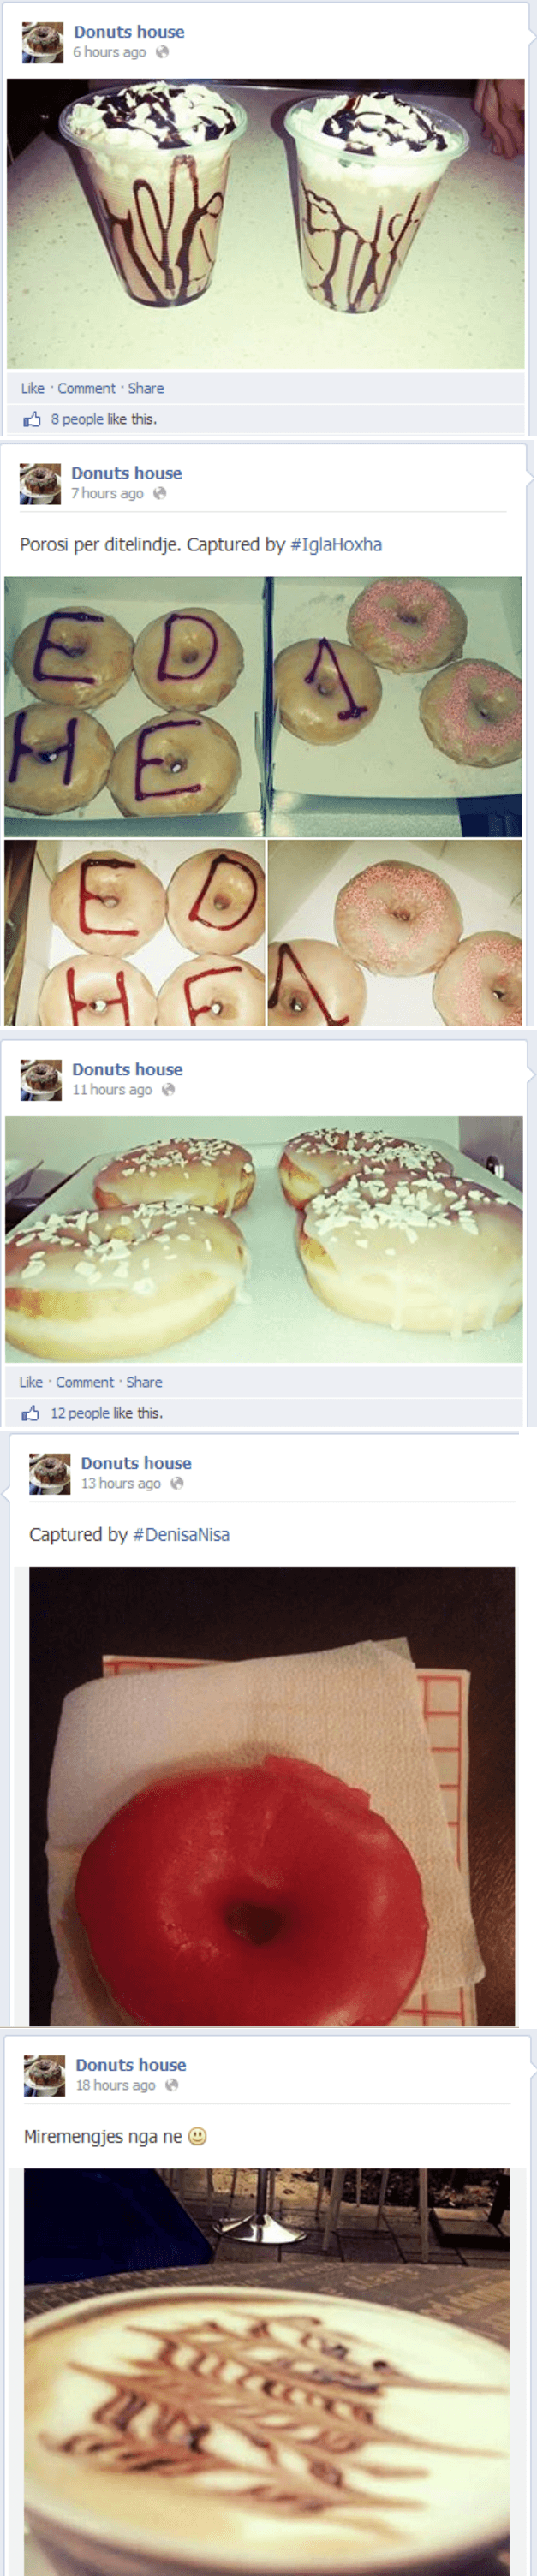 donut posts that nobody cares about